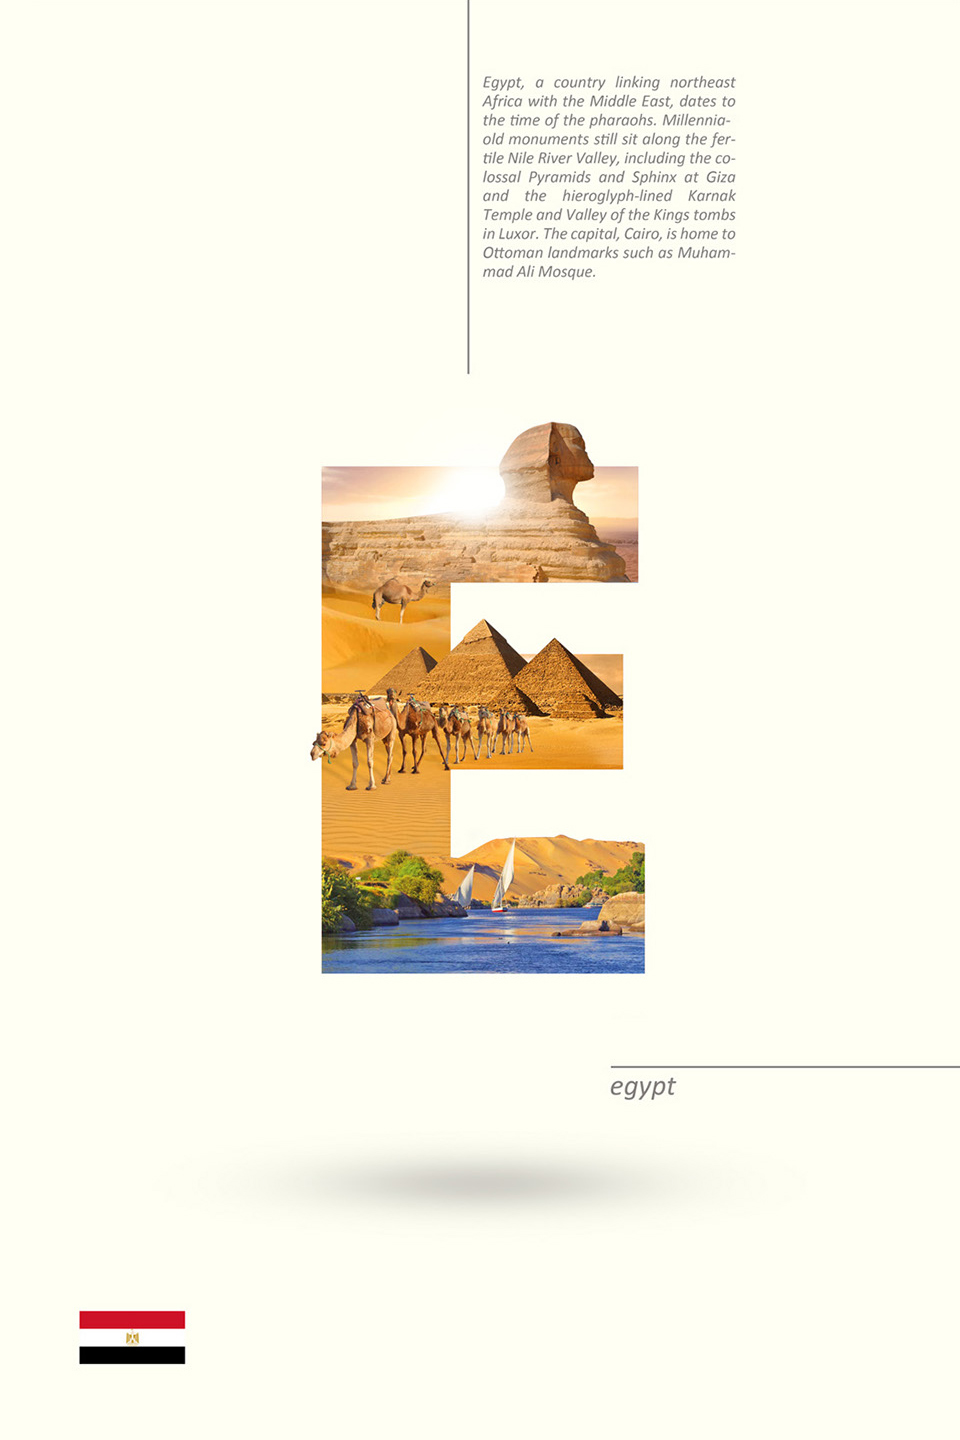 Beautiful Alphabet Series Of Countries And Their Iconic Landmarks - Egypt